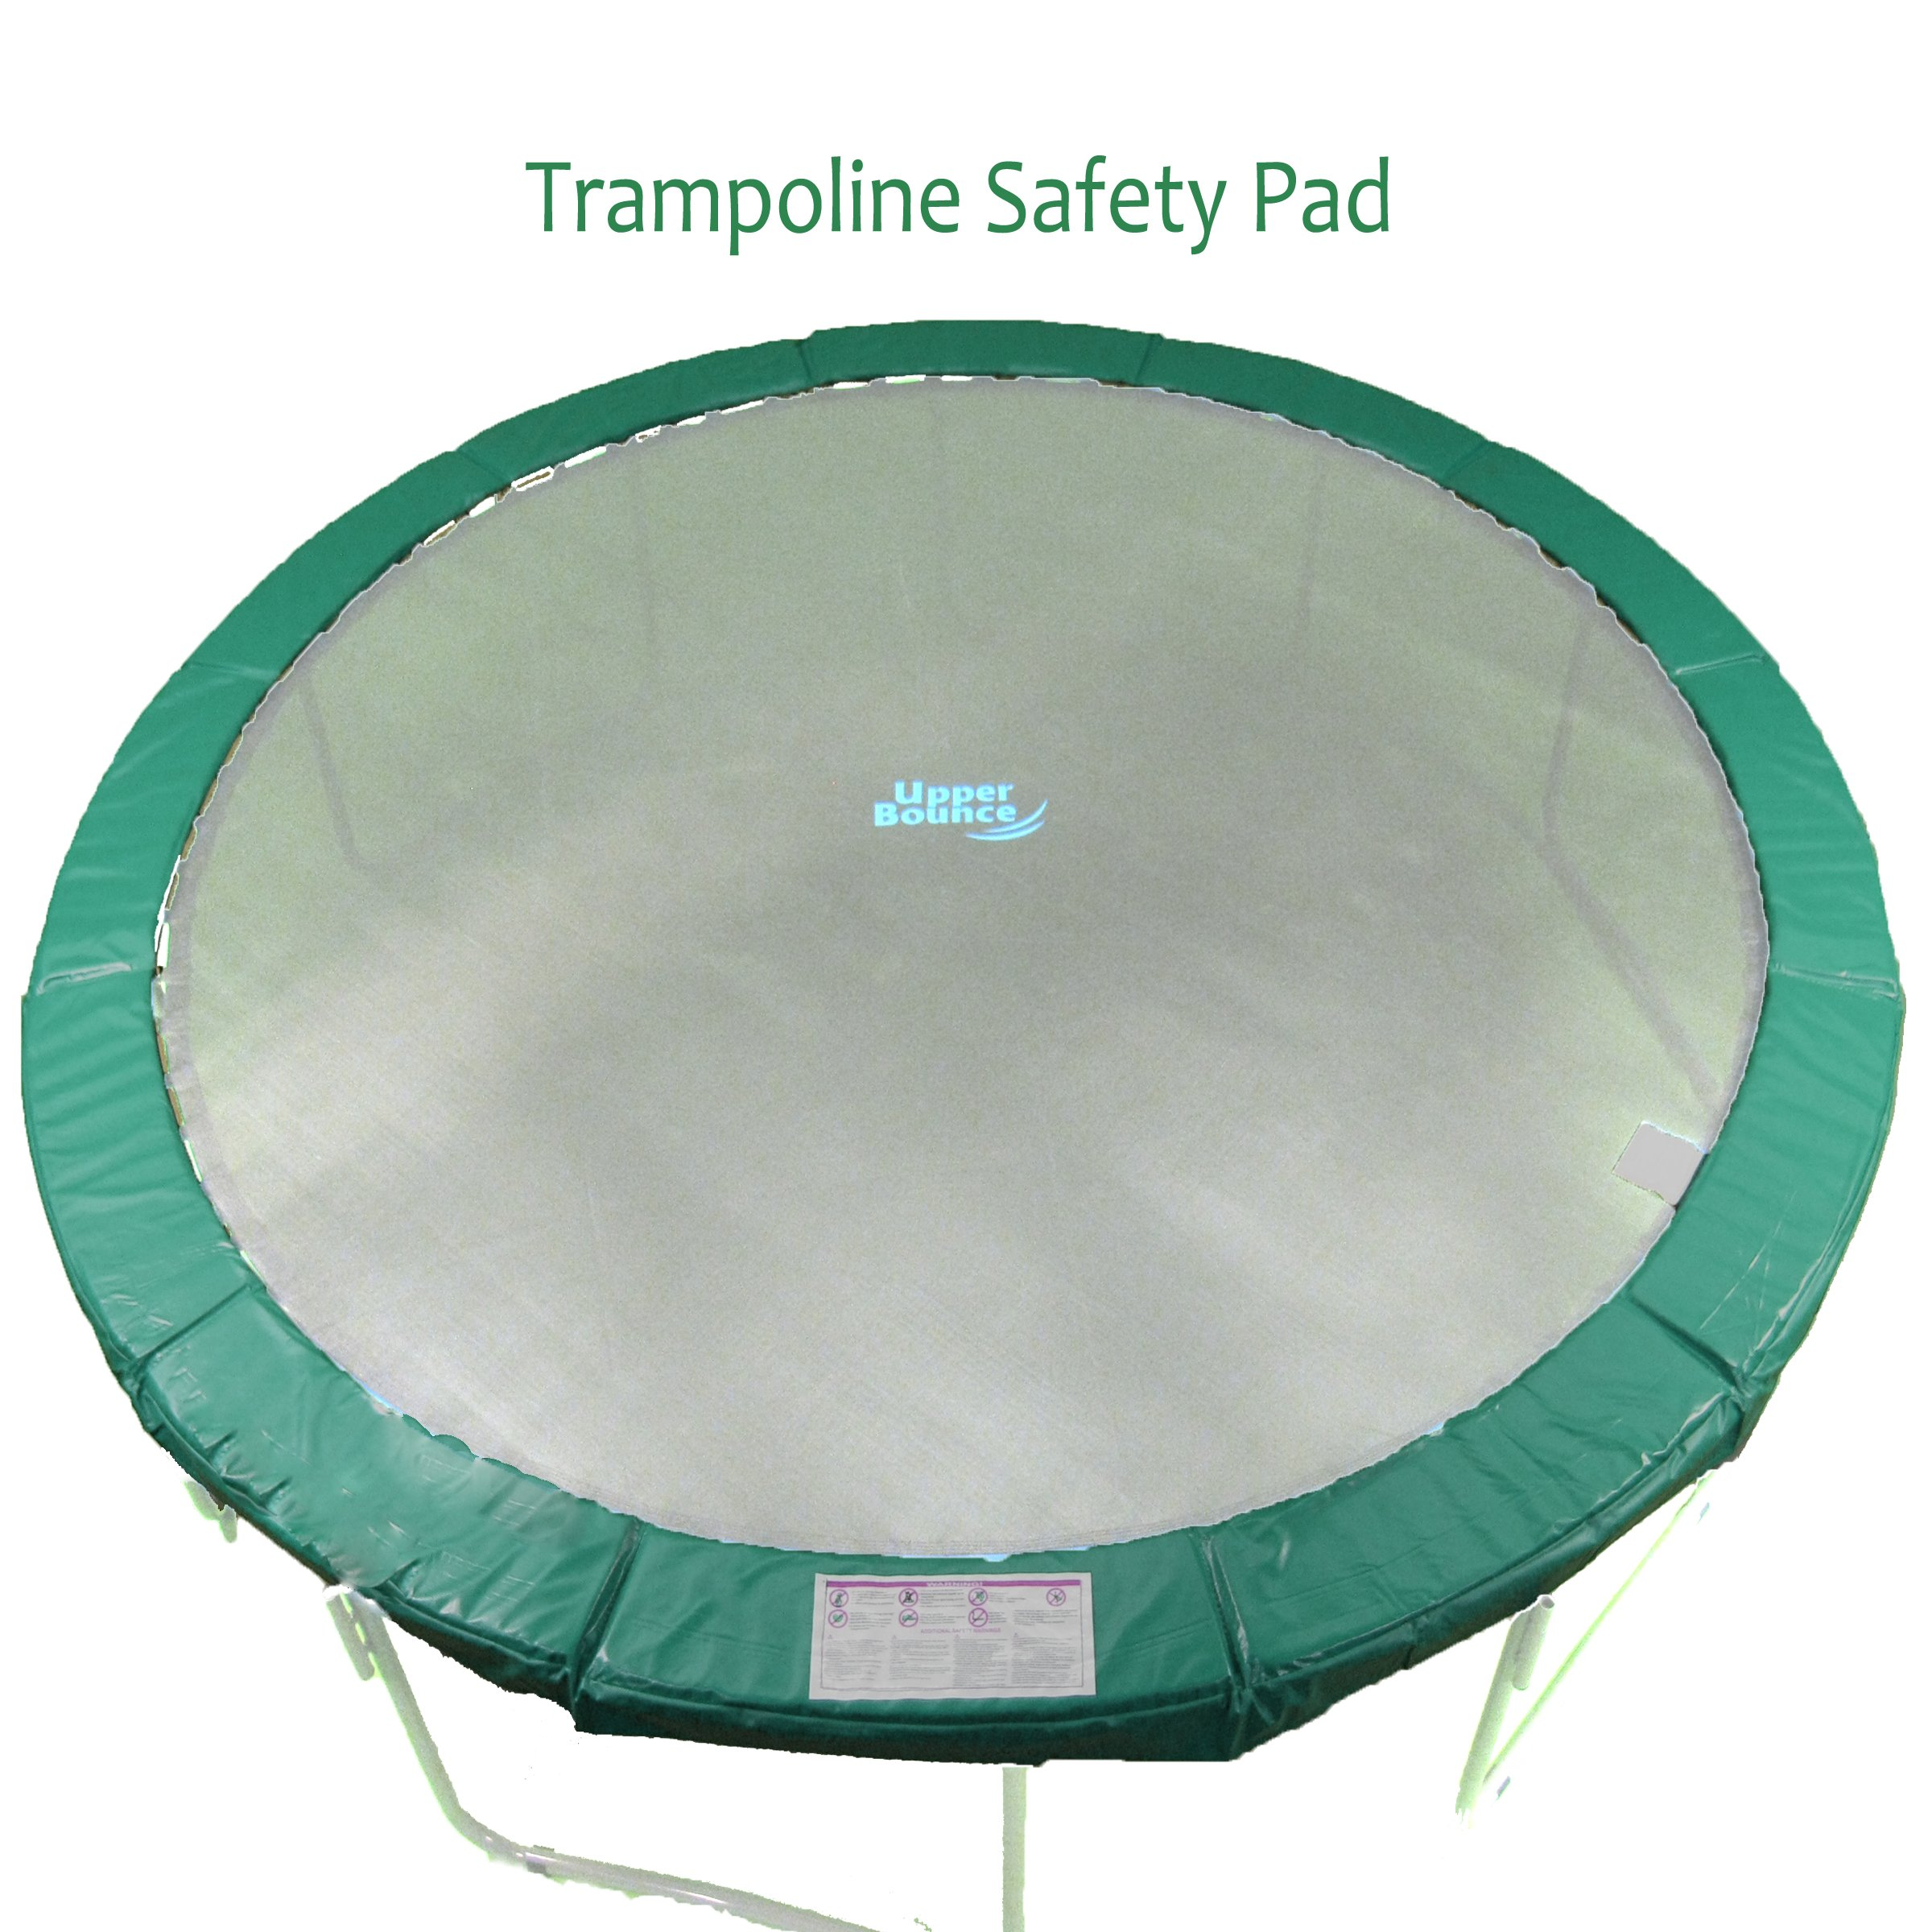 Upper Bounce 12' Super Trampoline Replacement Safety Pad With Spring Cover Fits 12 FT Round Trampoline Frames With 10 wide In Green Color by Upper Bounce (Image #1)